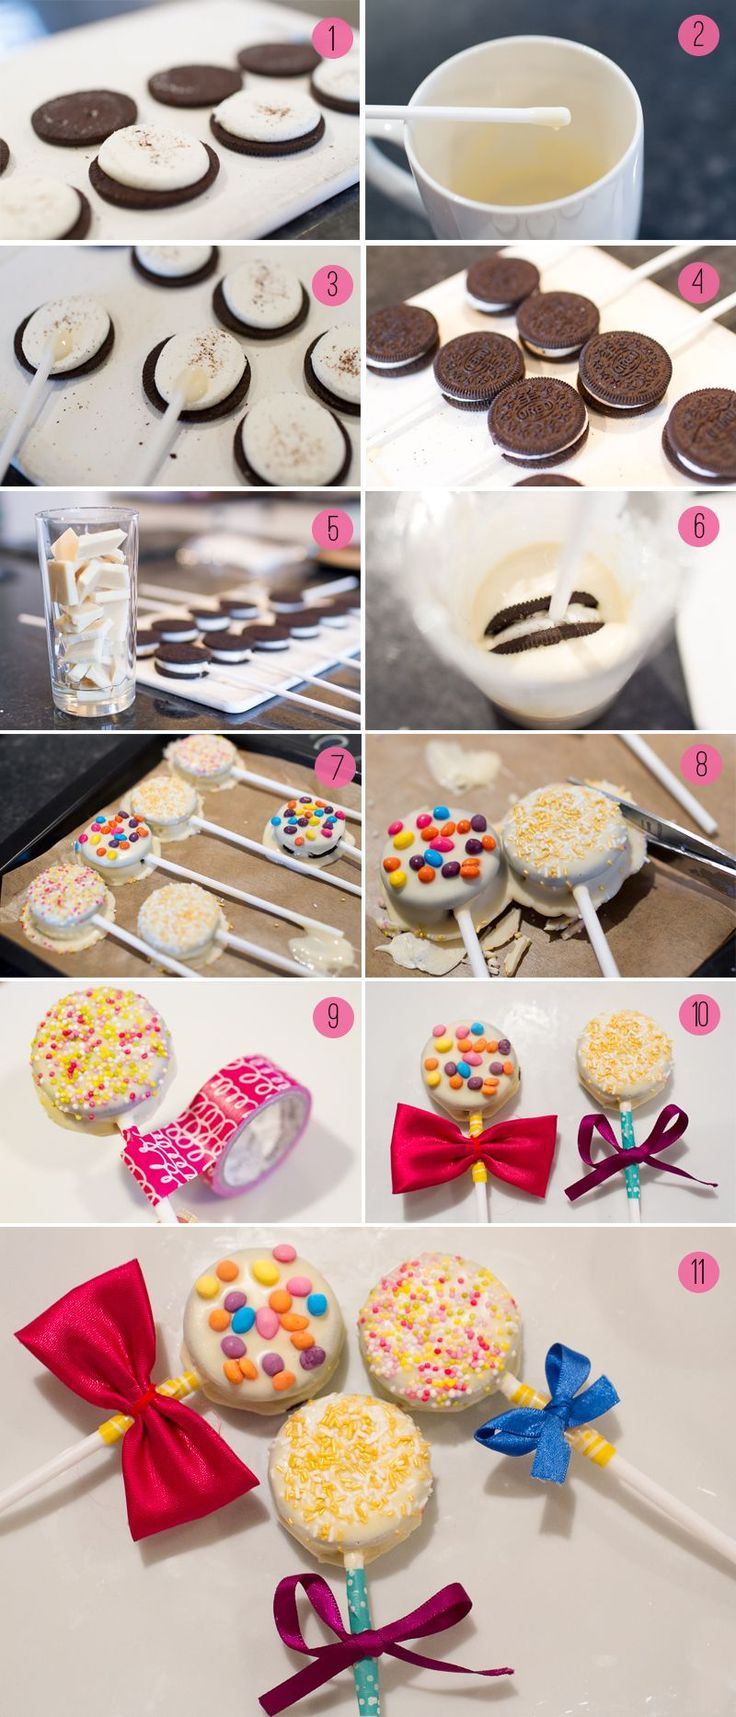 Wedding DIY - How To Make Oreo Pops - Wedding Favor. Easily done and could use the Golden Vanilla Oreos!!